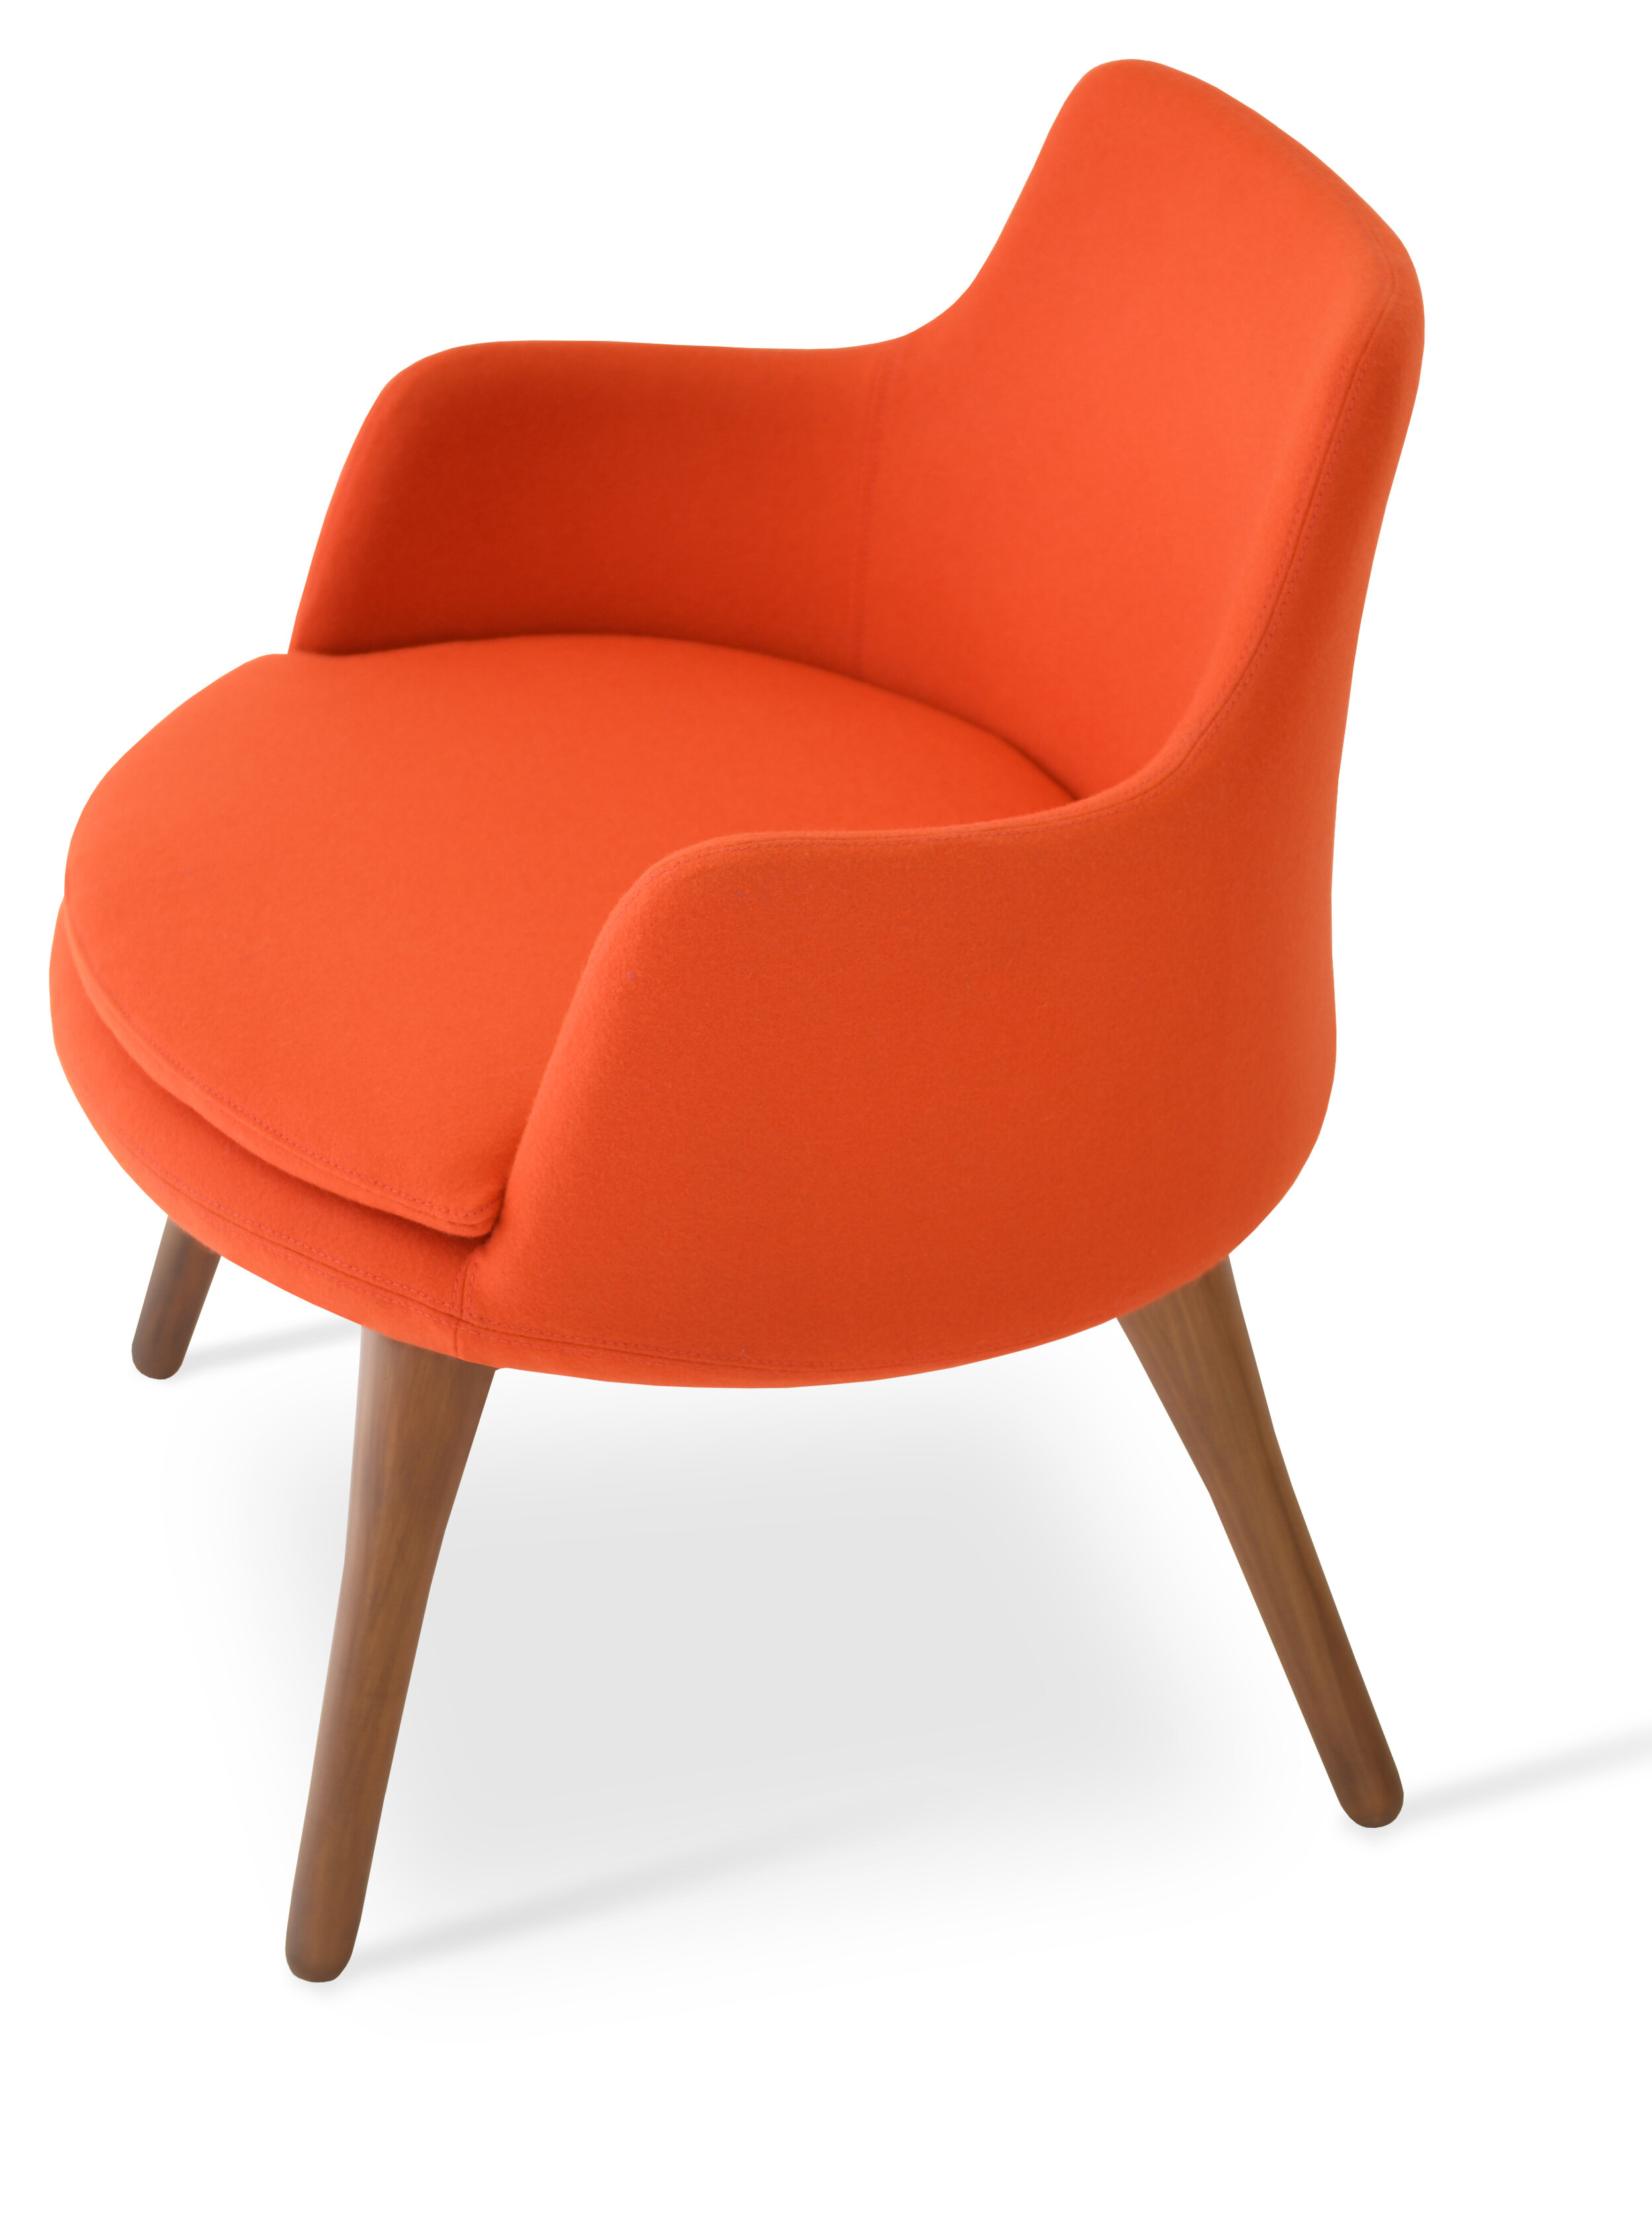 Orange Slipcovered Accent Chairs You Ll Love In 2021 Wayfair